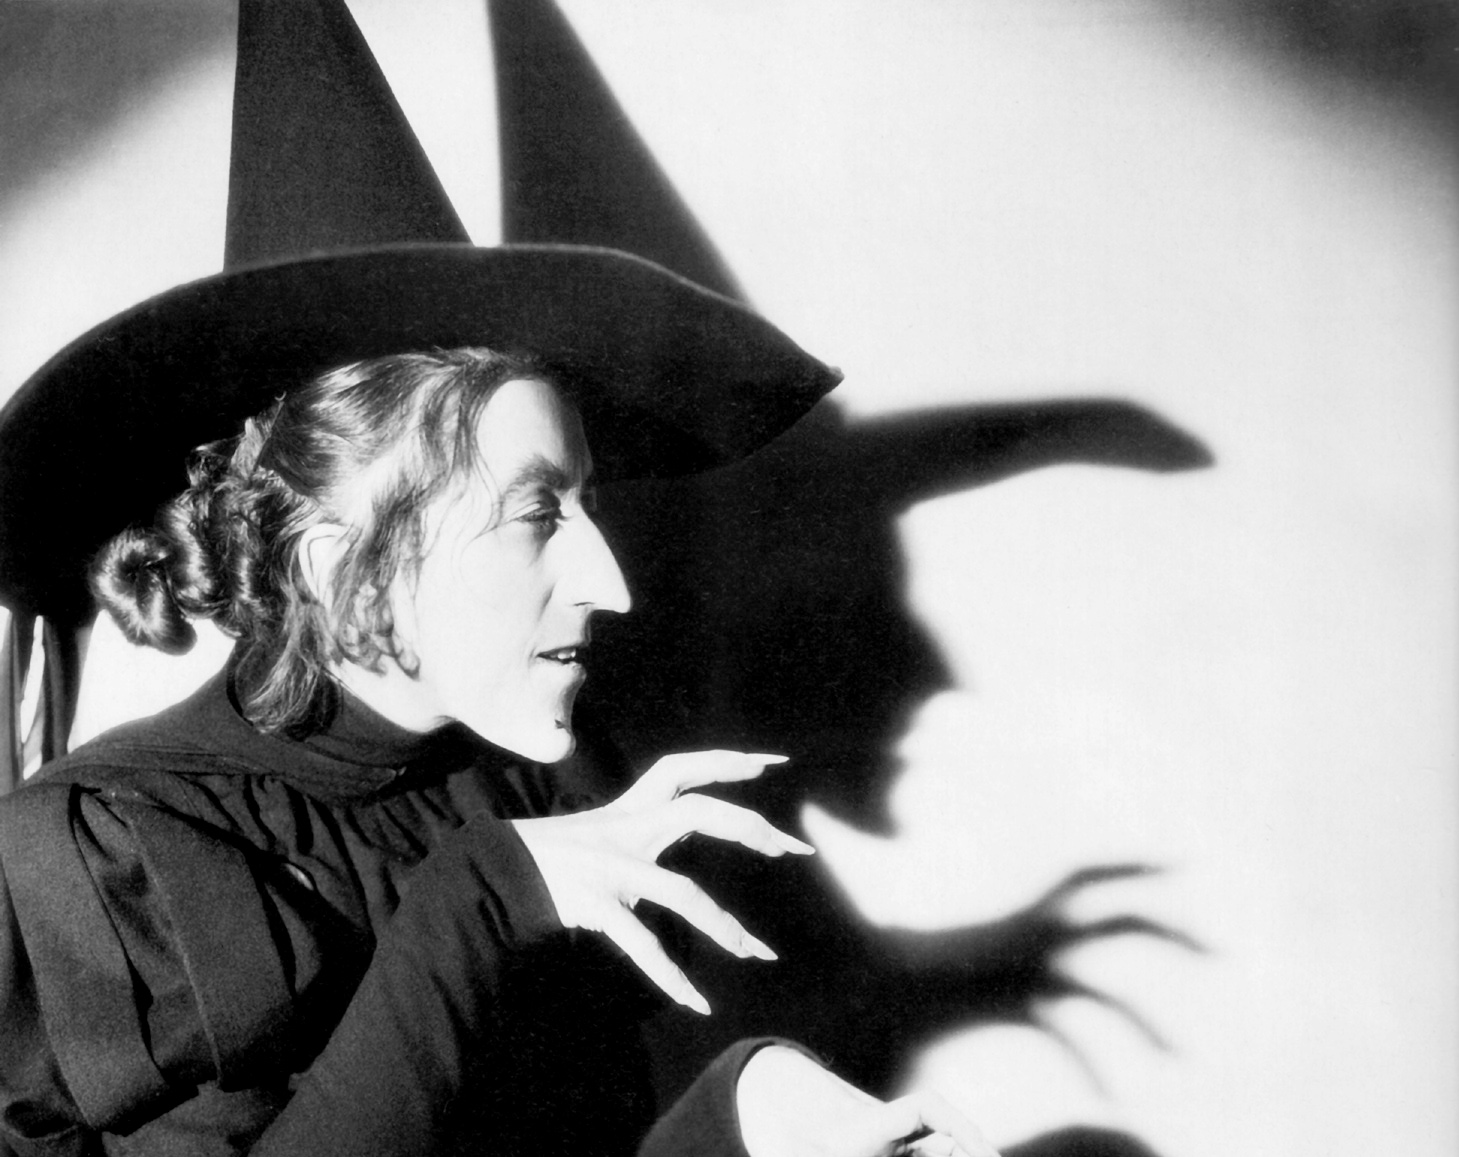 Epic photo of Margaret Hamilton as The Wicked Witch of the West.